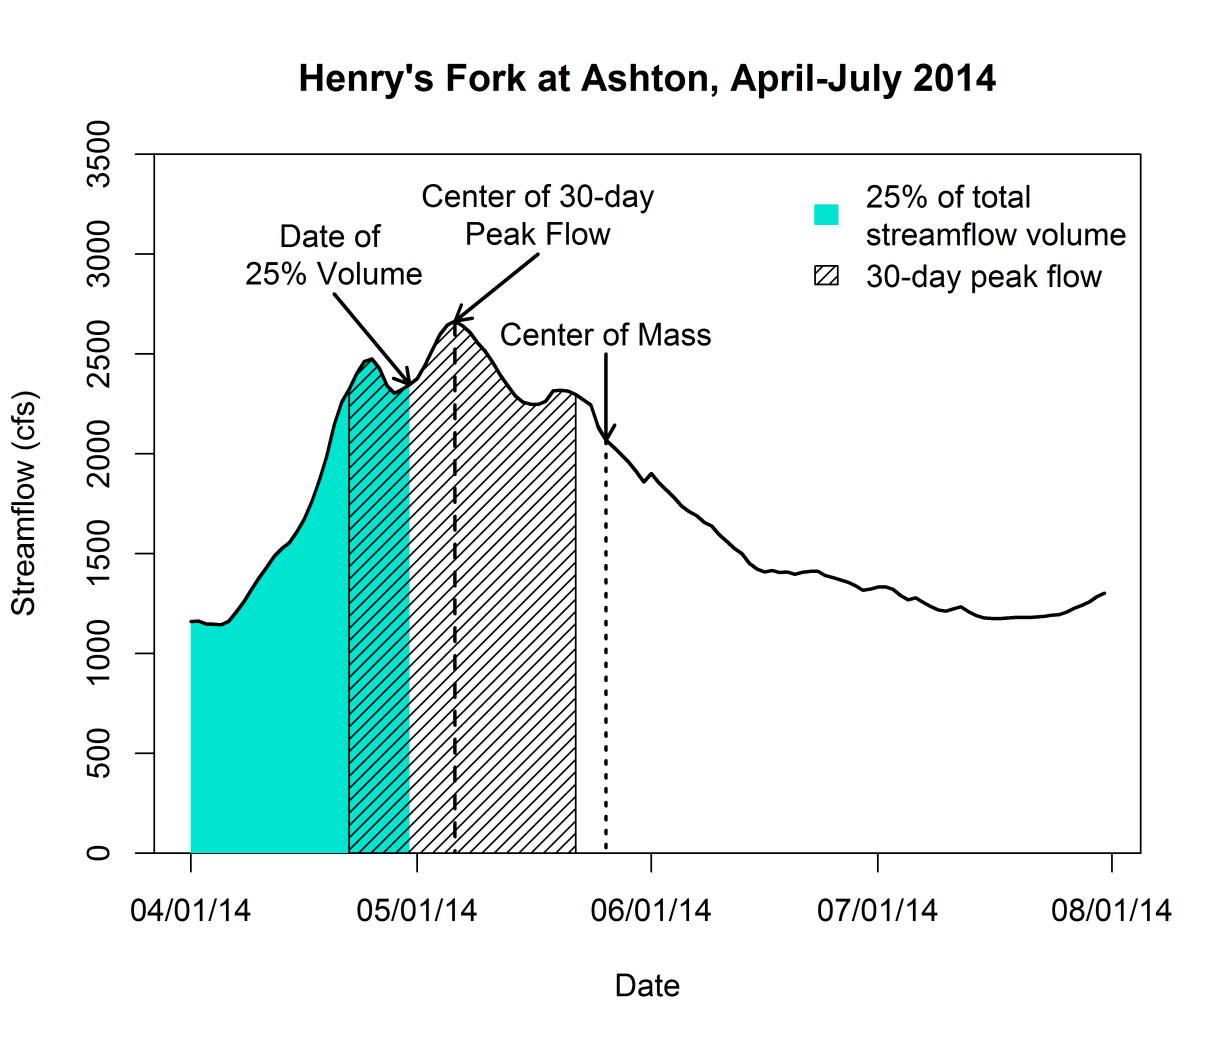 Hydrograph of Henry's Fork flow at Ashton, illustrating measures of runoff timing.